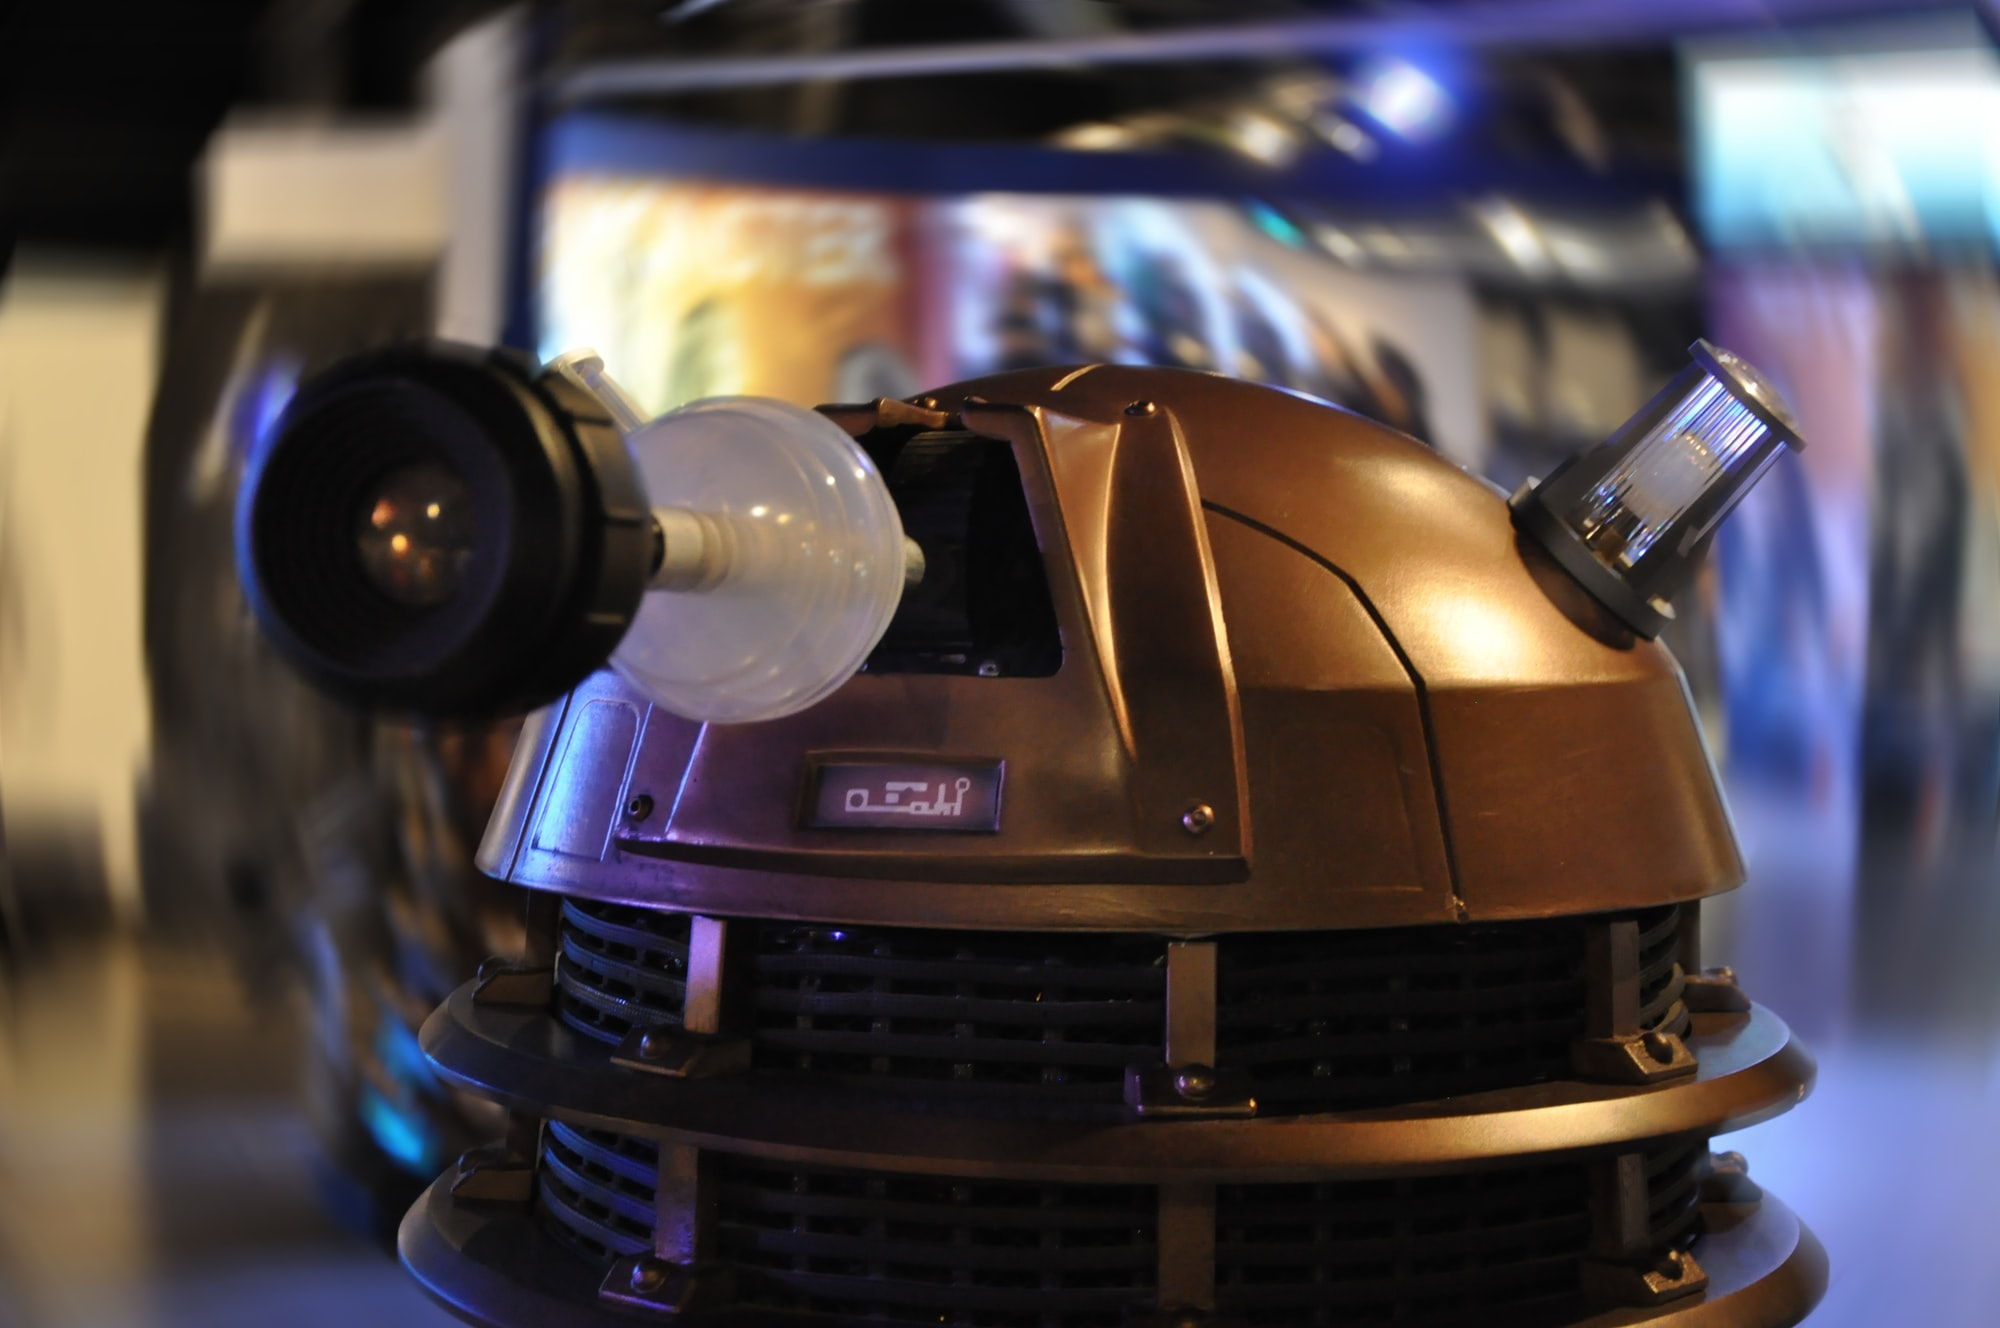 Exclusive Funko Pop! Doctor Who Vinyl Figures Are Everything